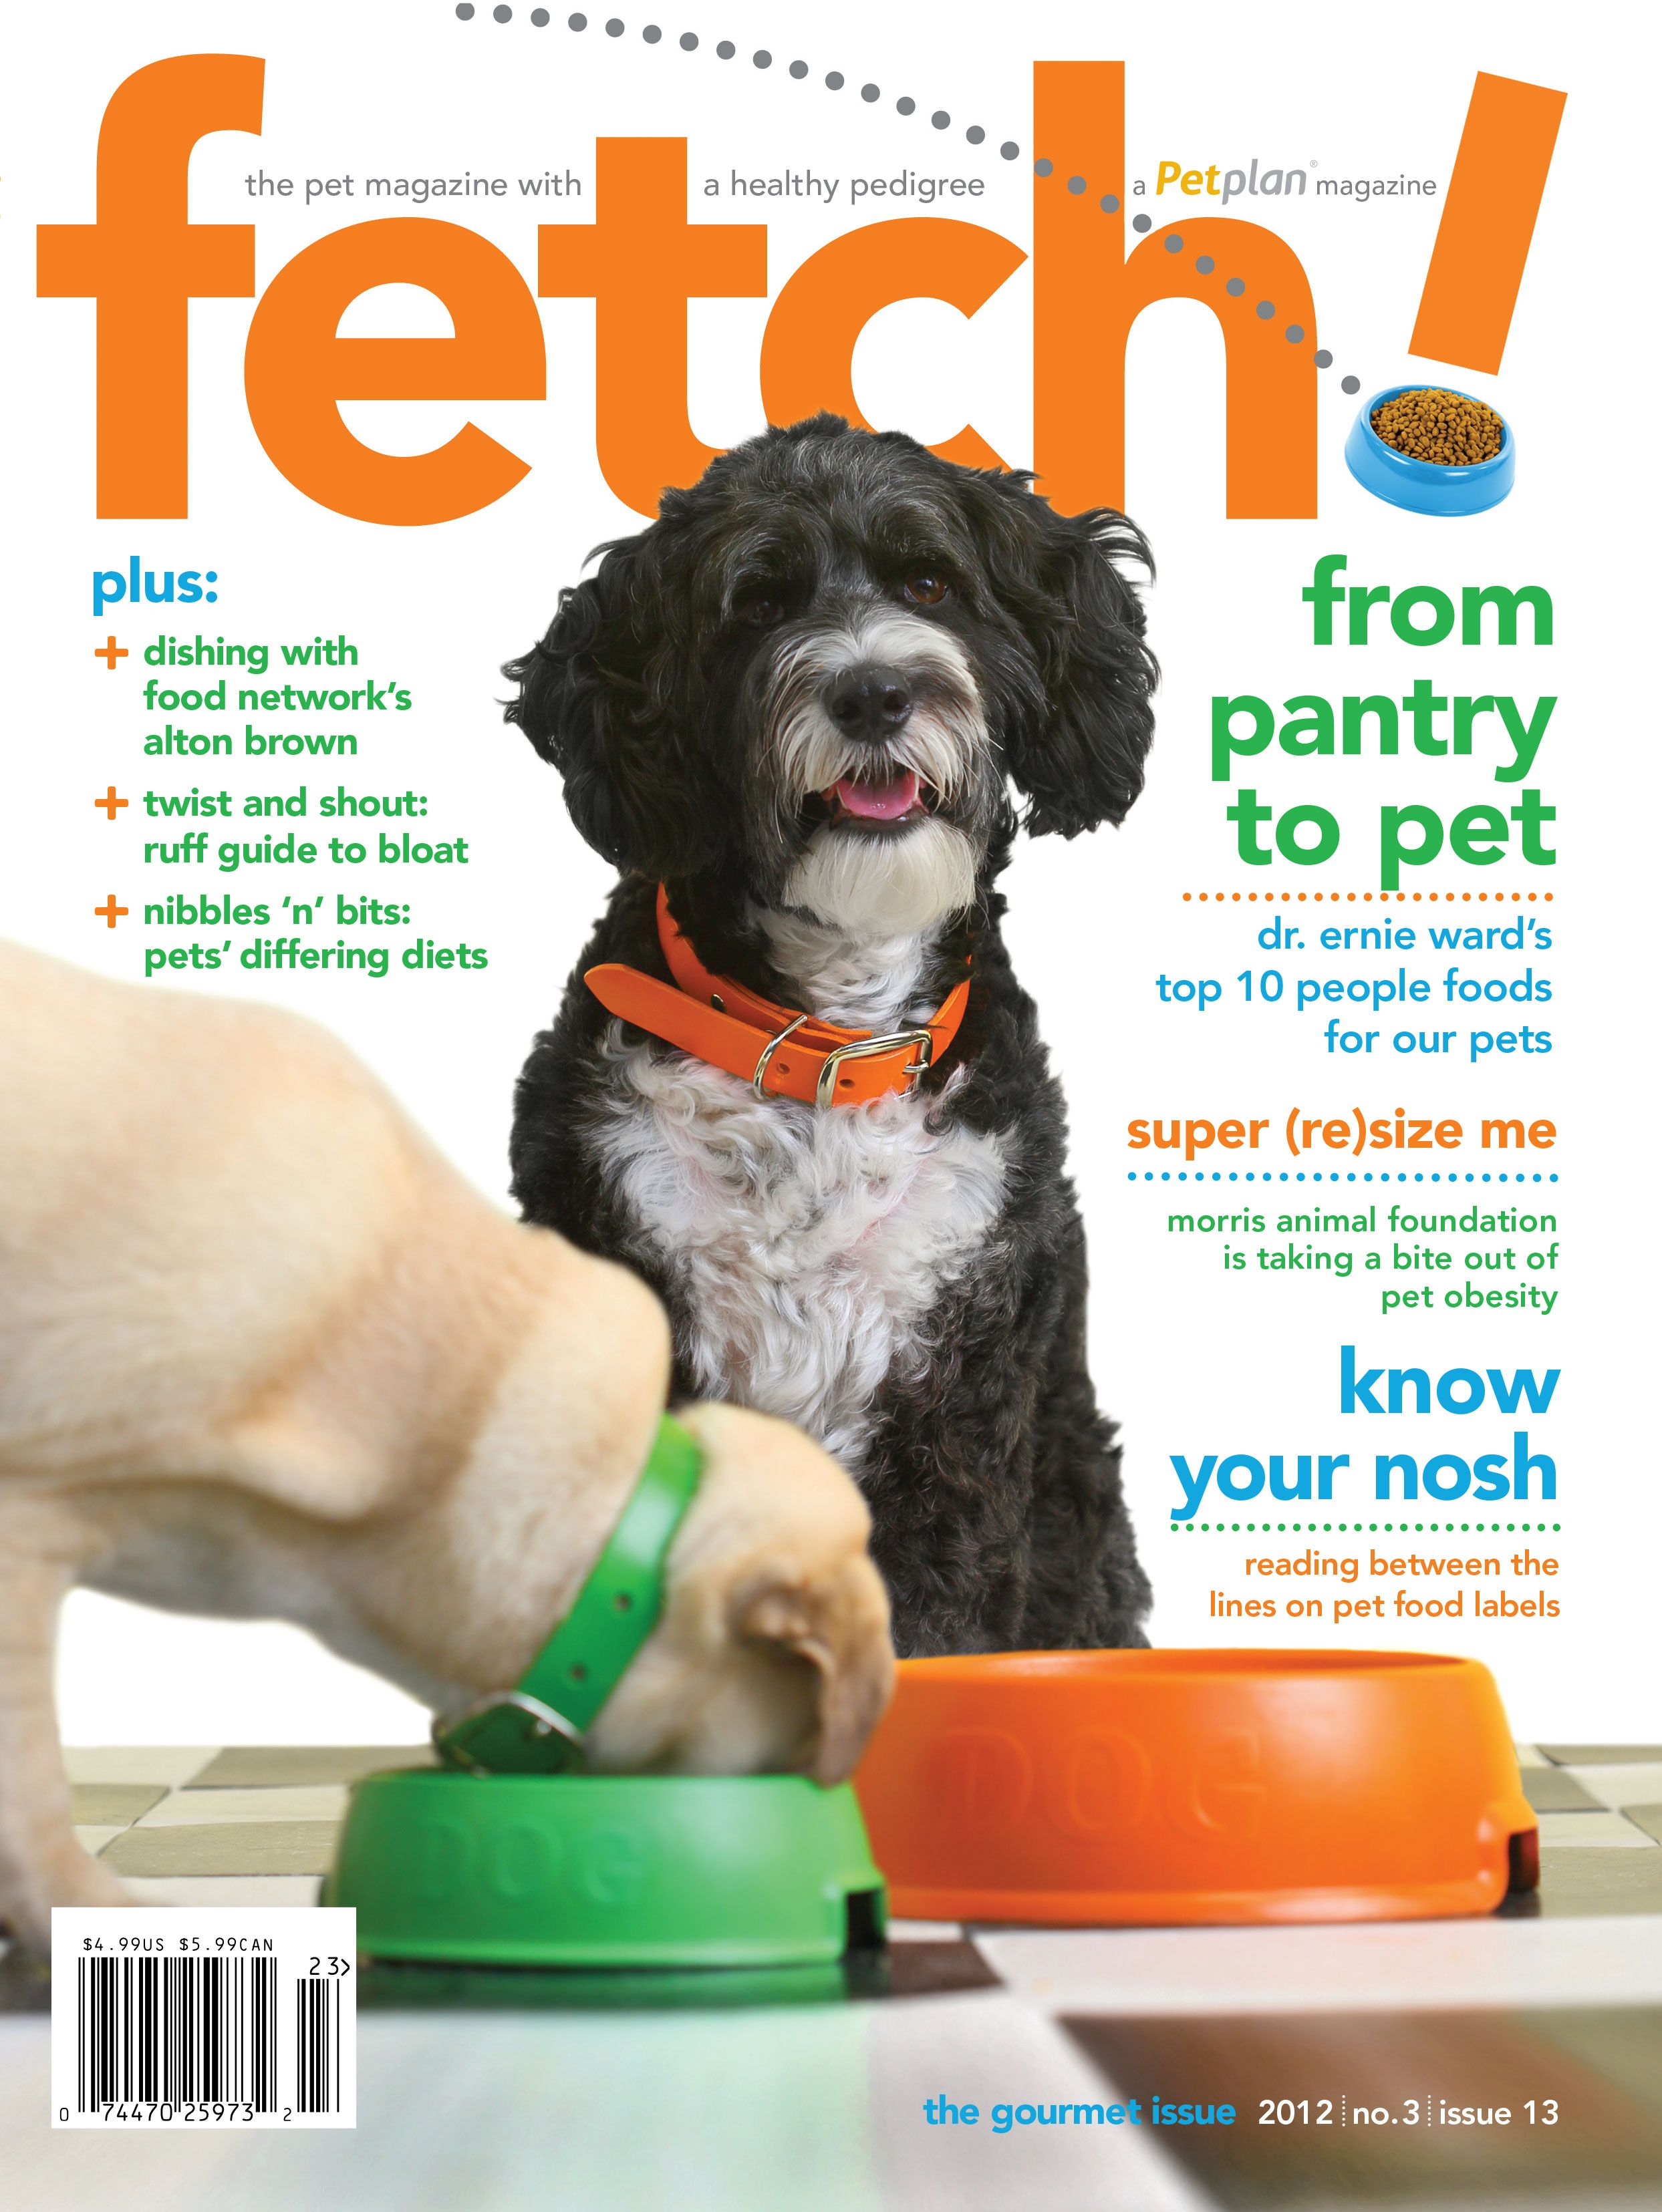 In The Gourmet Issue Of Fetch Magazine Petplan Pet Insurance